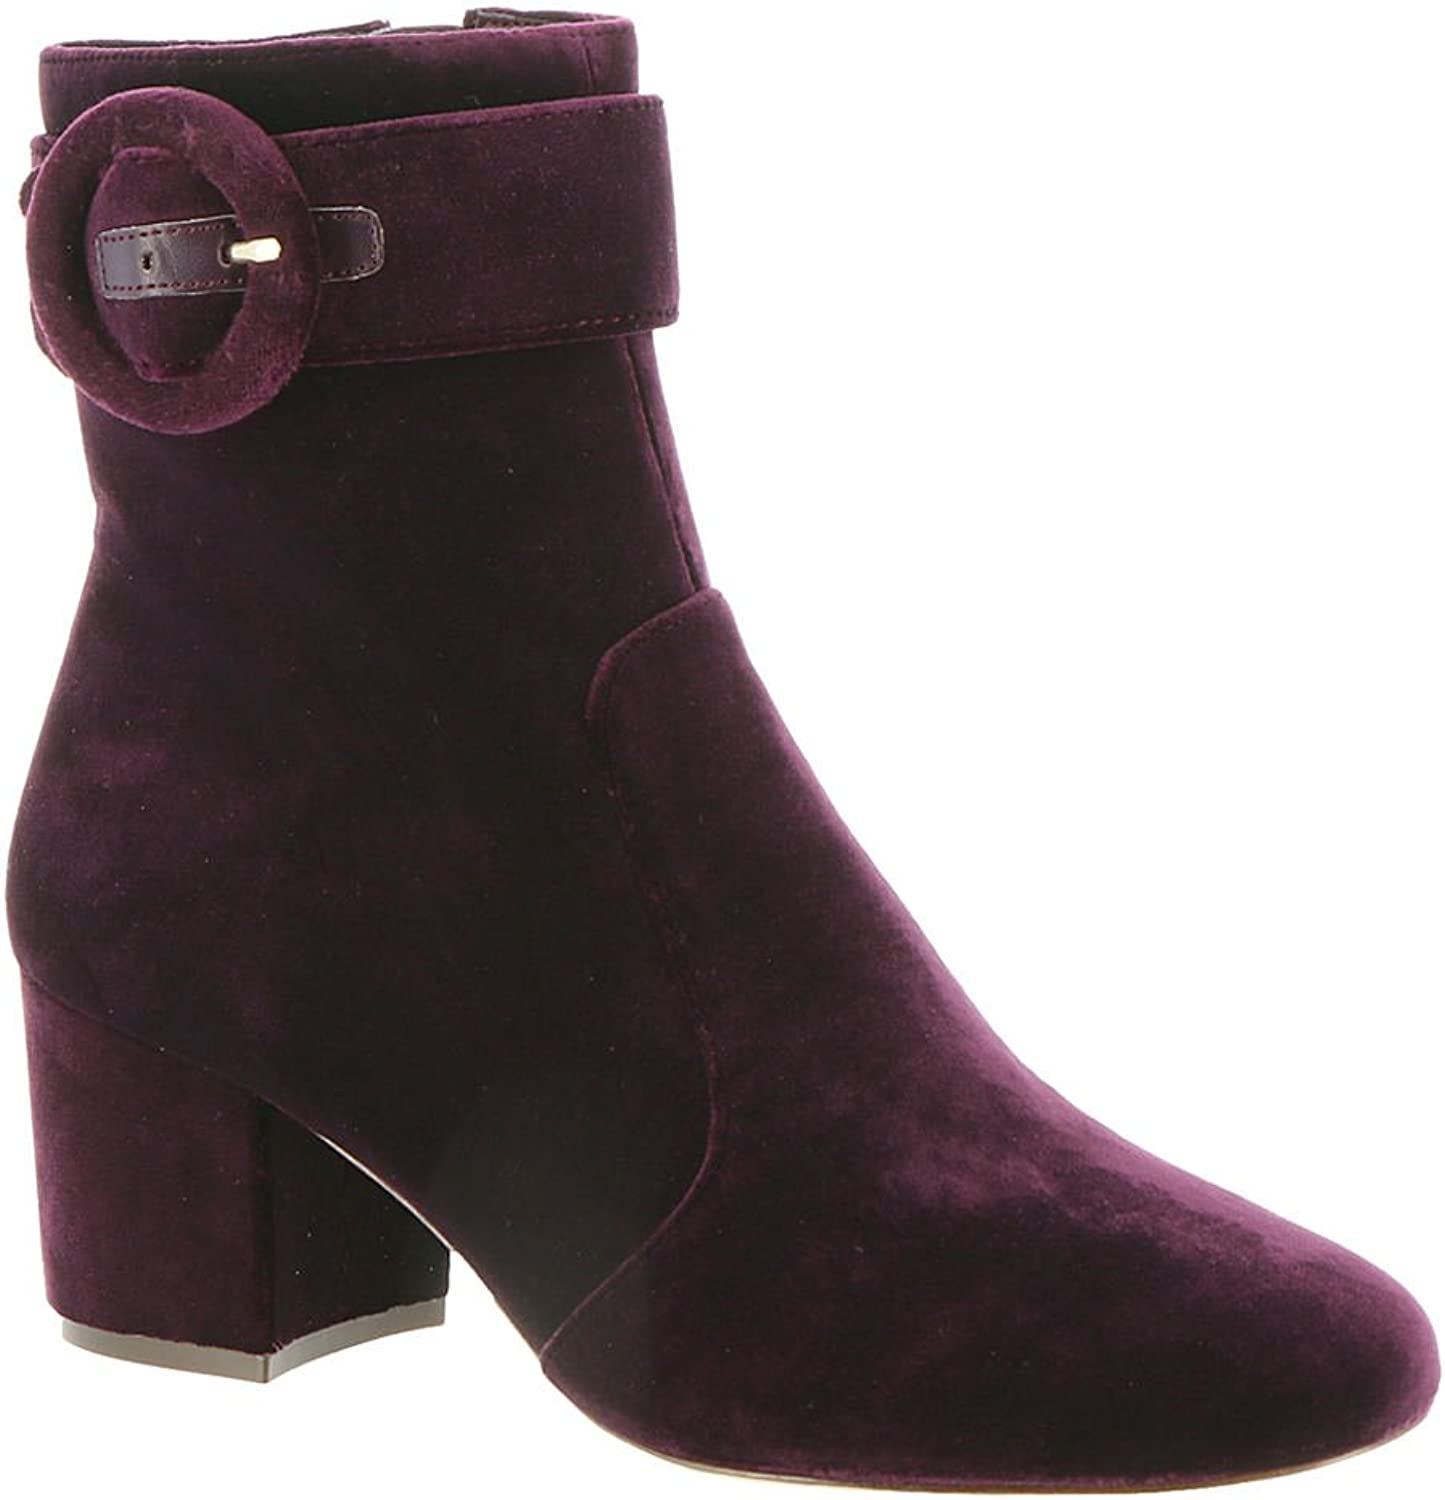 Nine West Women's Quilby Suede Ankle Boots